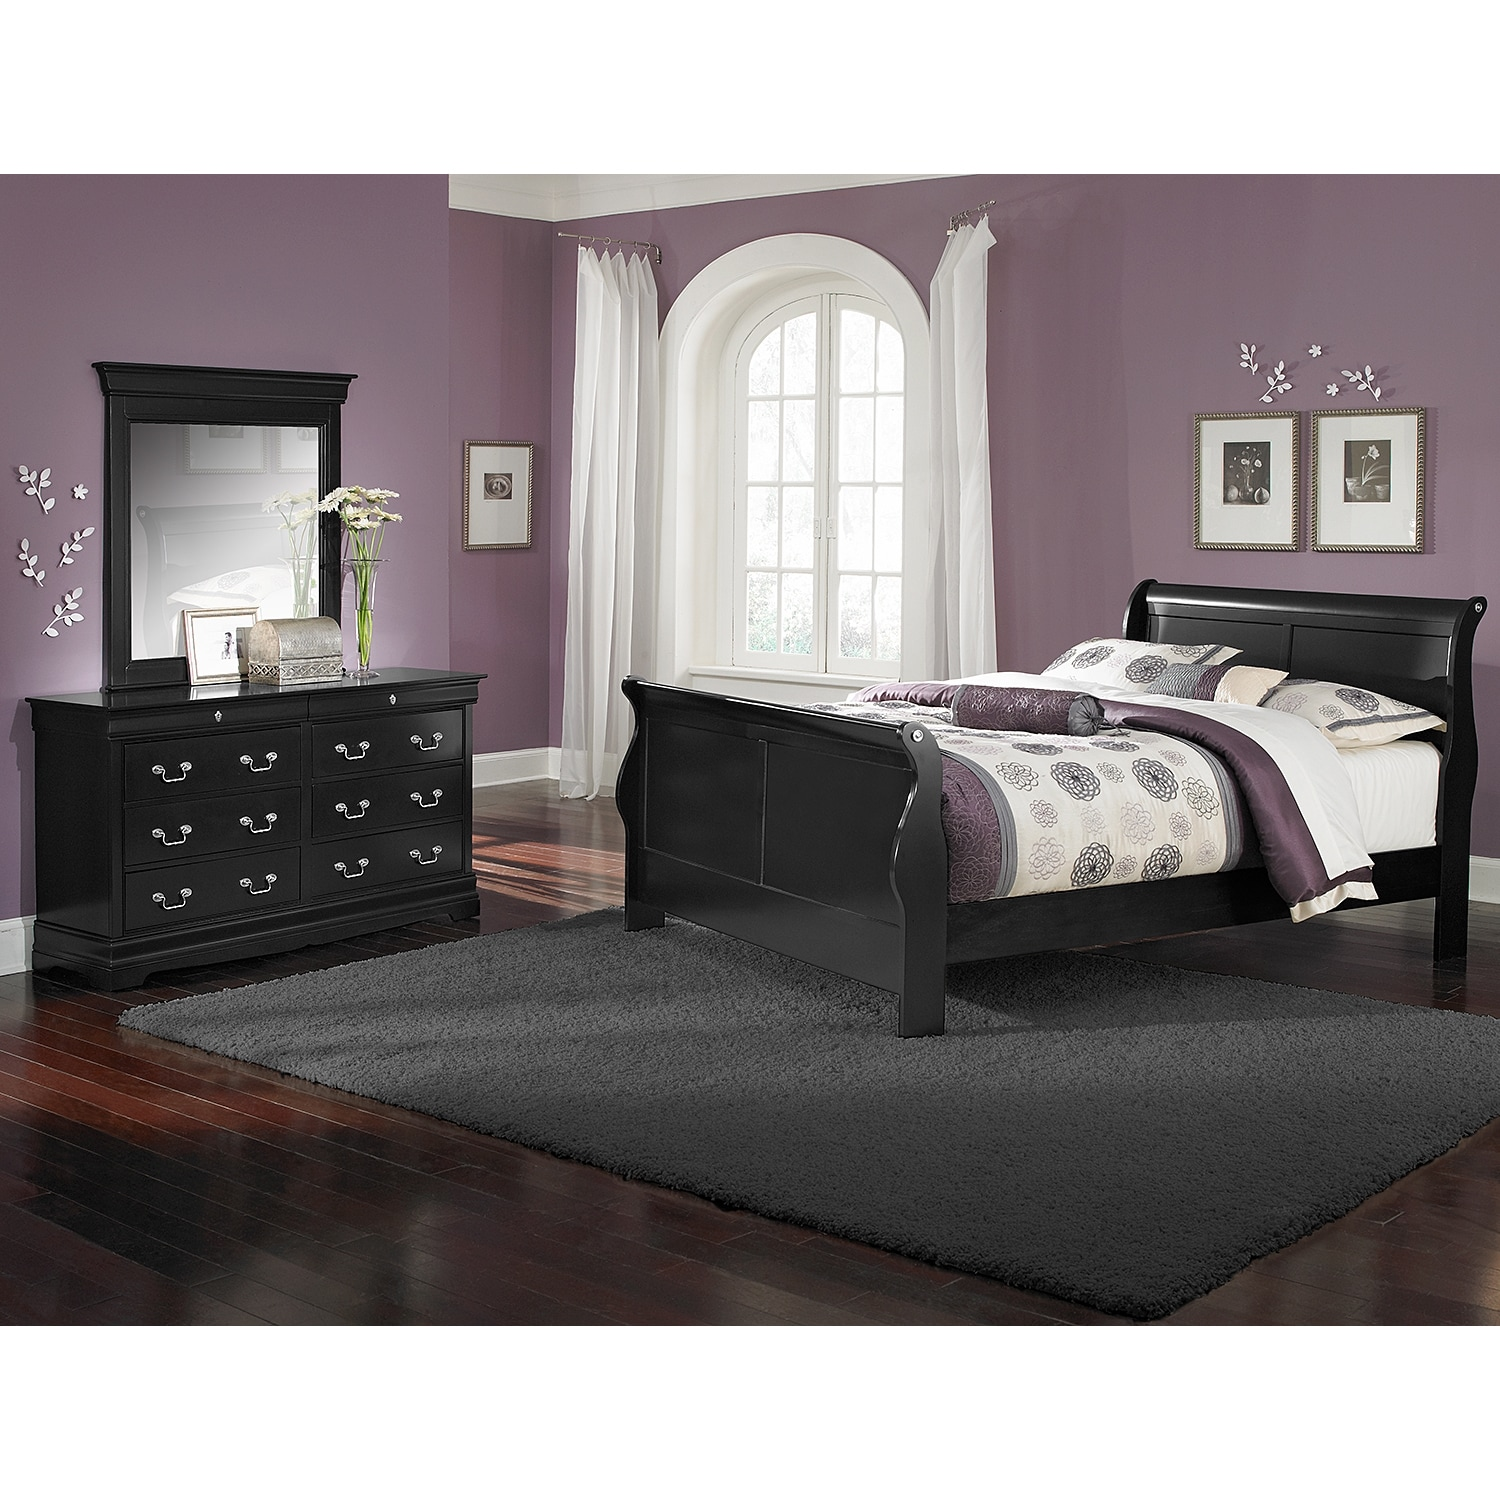 Bedroom Furniture - Neo Classic Youth 5-Piece Full Bedroom Set - Black